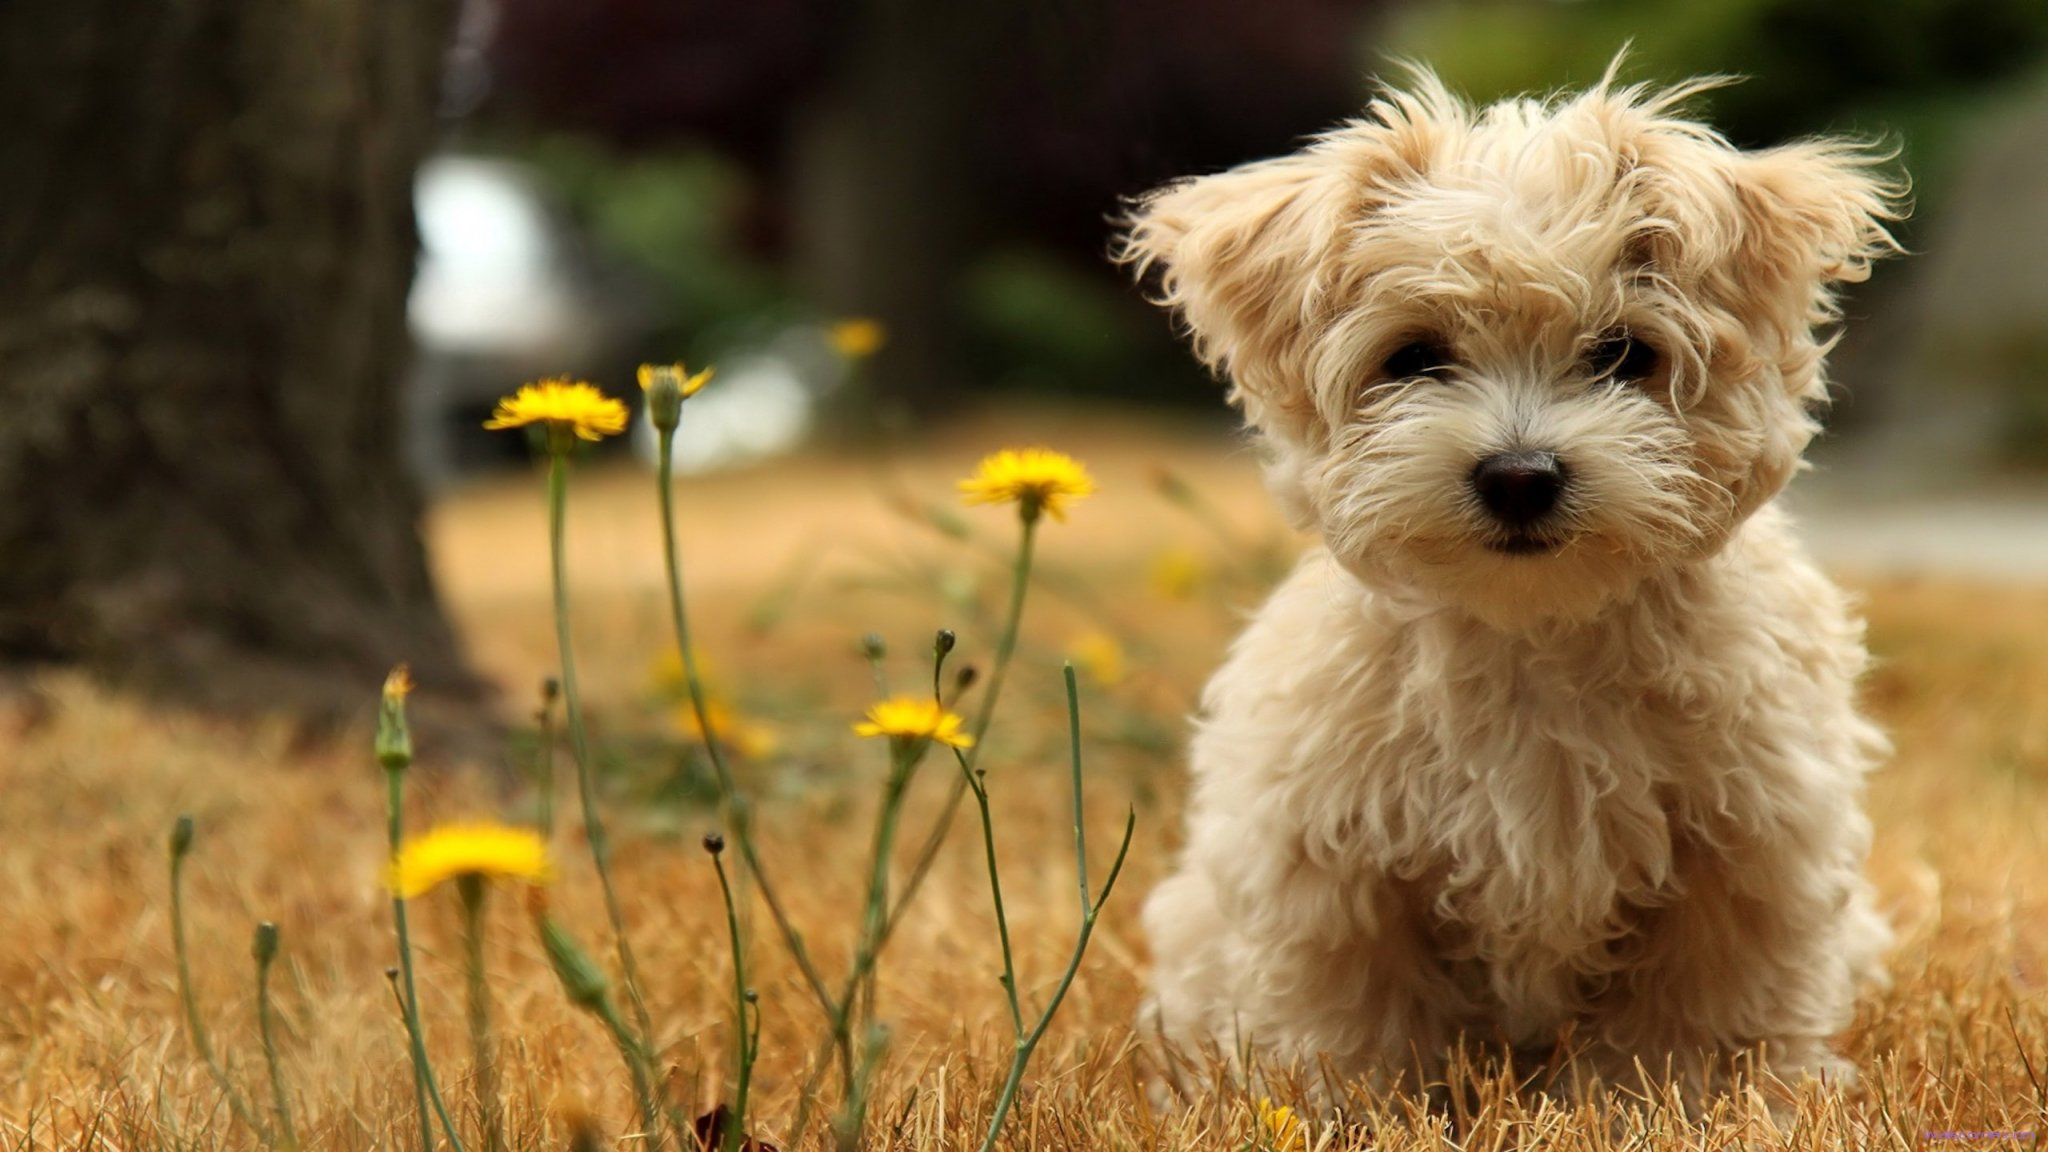 of cute litle dog beauty cute litle dog hd wallpaper wallpaper 2048x1152